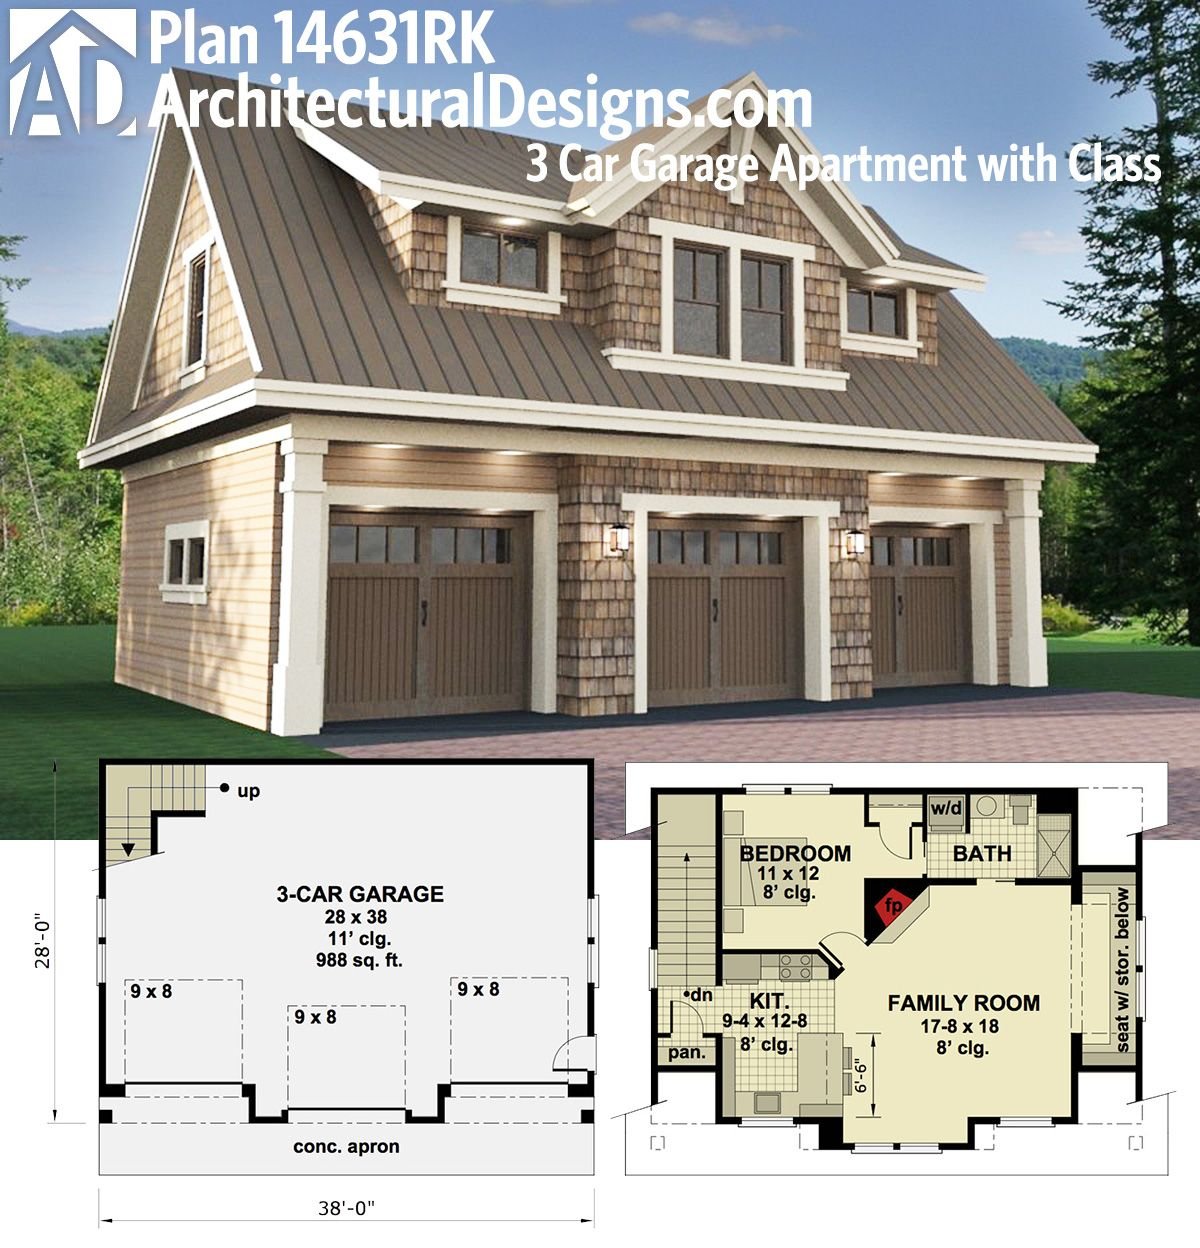 Plan 14631rk 3 car garage apartment with class carriage for Carriage home plans